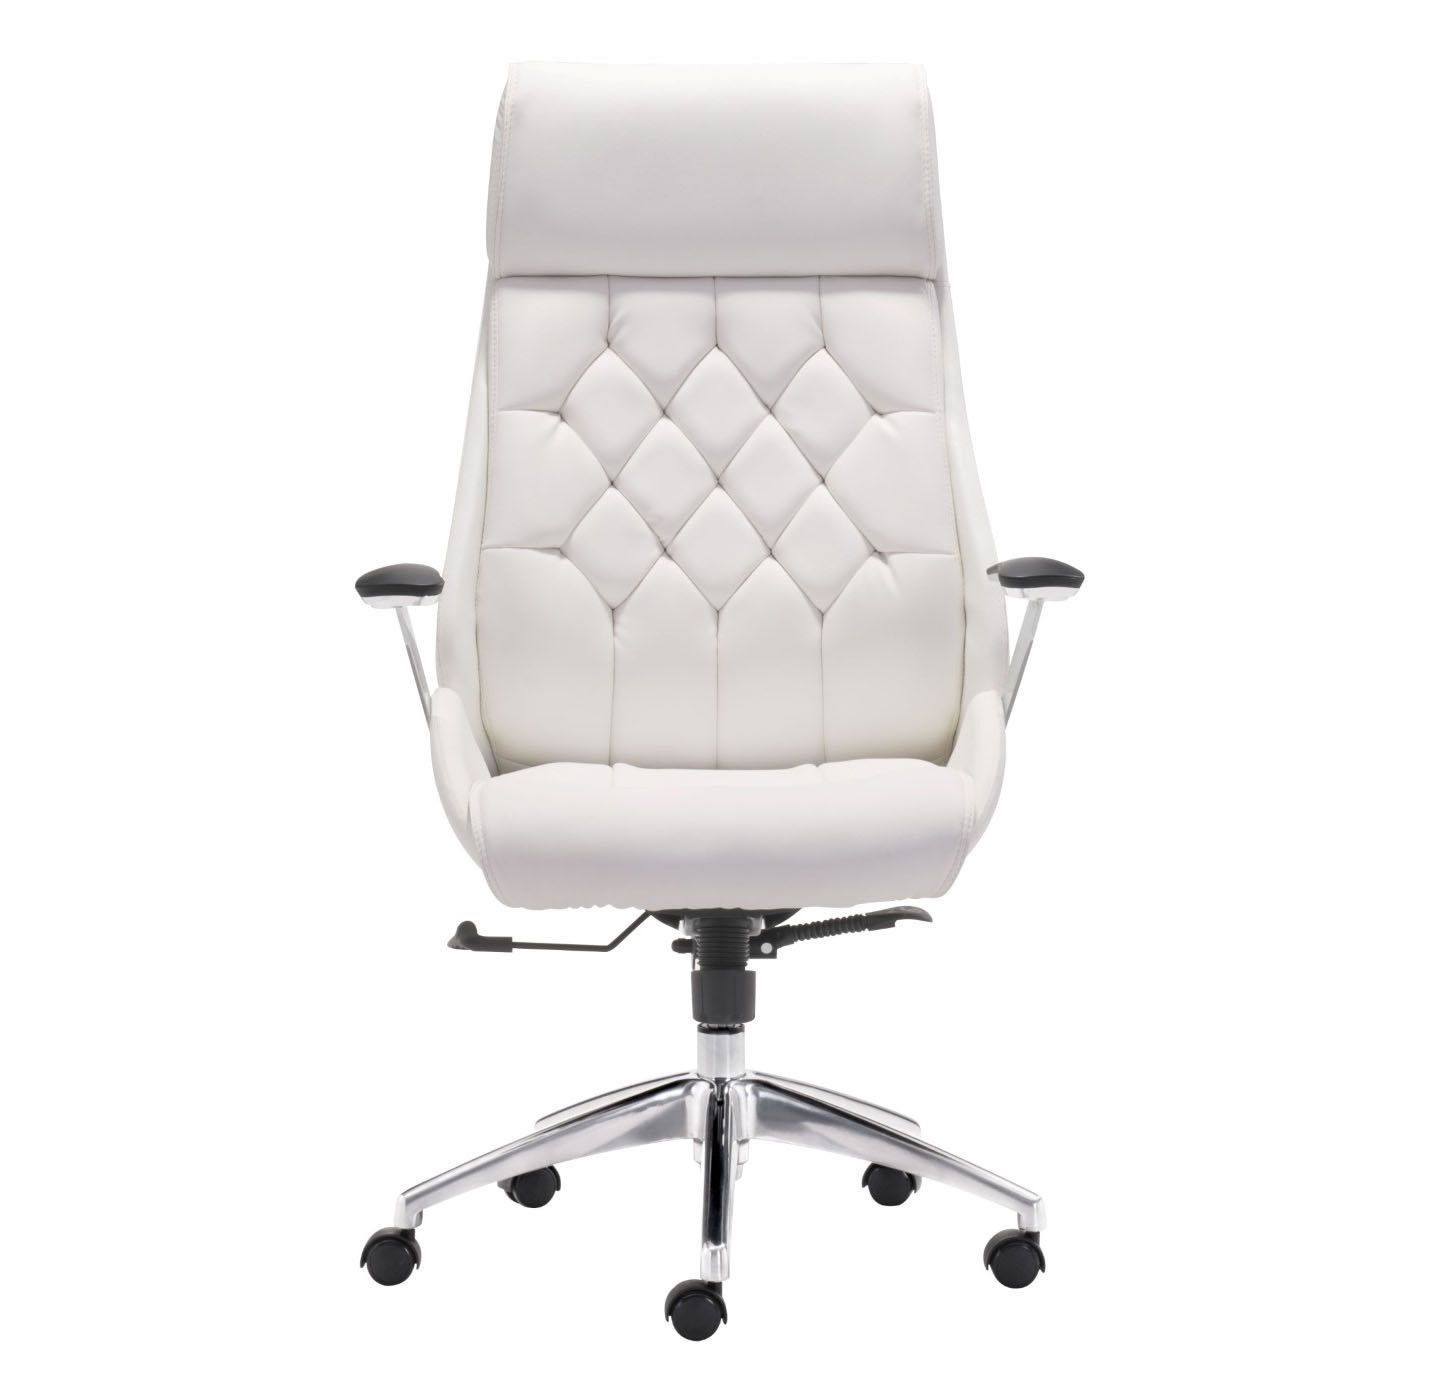 Office Chairs Canada - Rustic Home Office Furniture Check more at ...